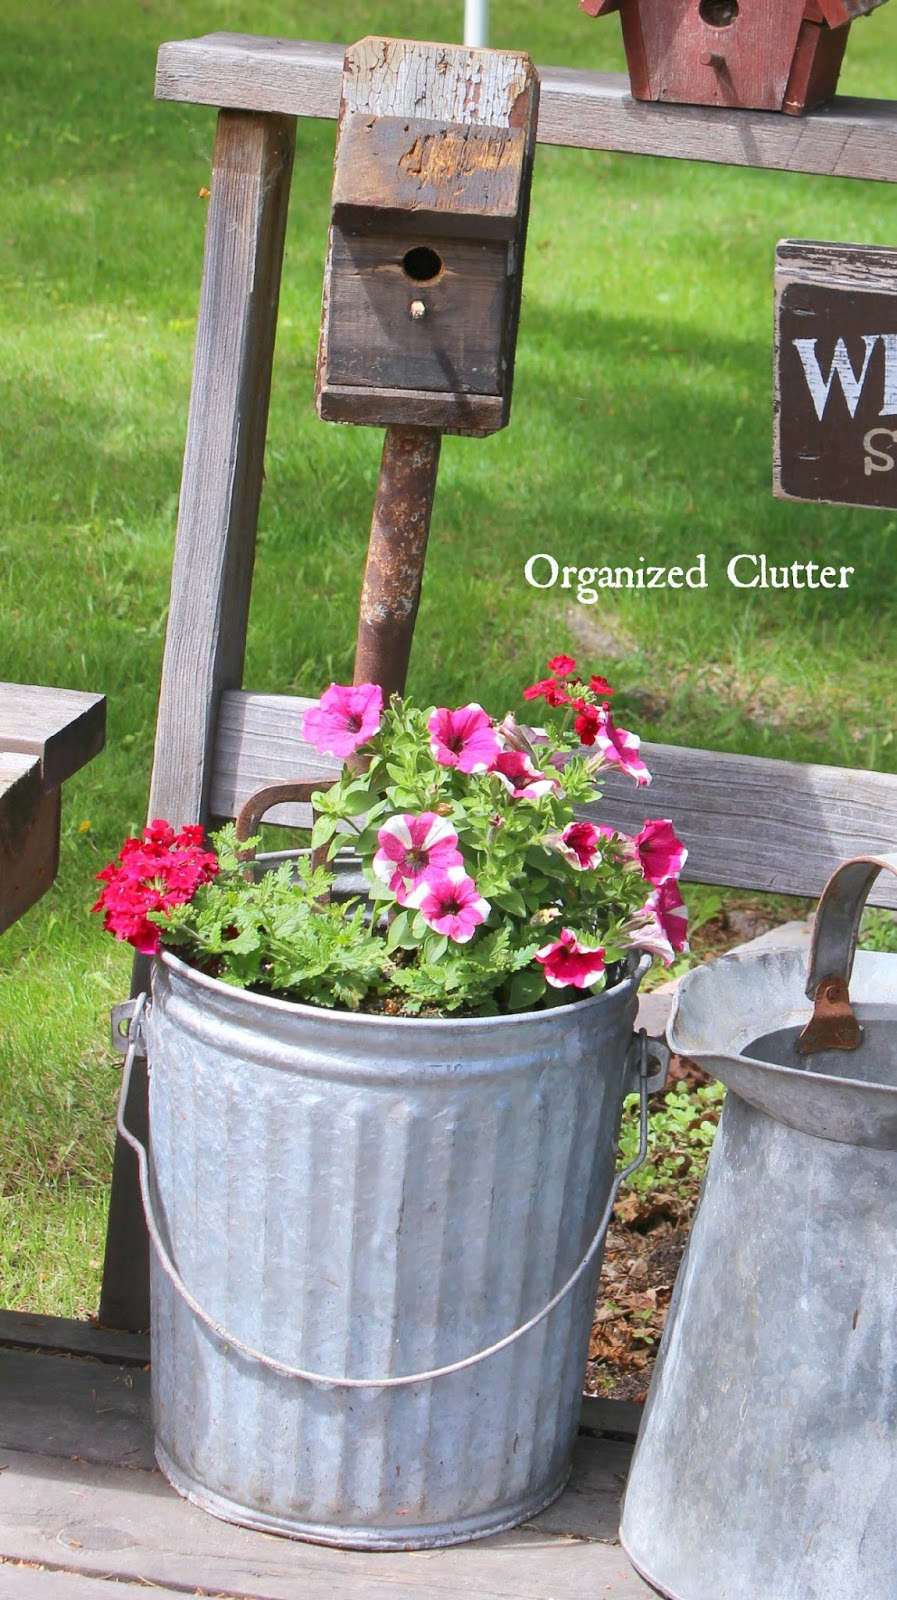 Decorating the Deck with Rustic Birdhouses   Organized Clutter